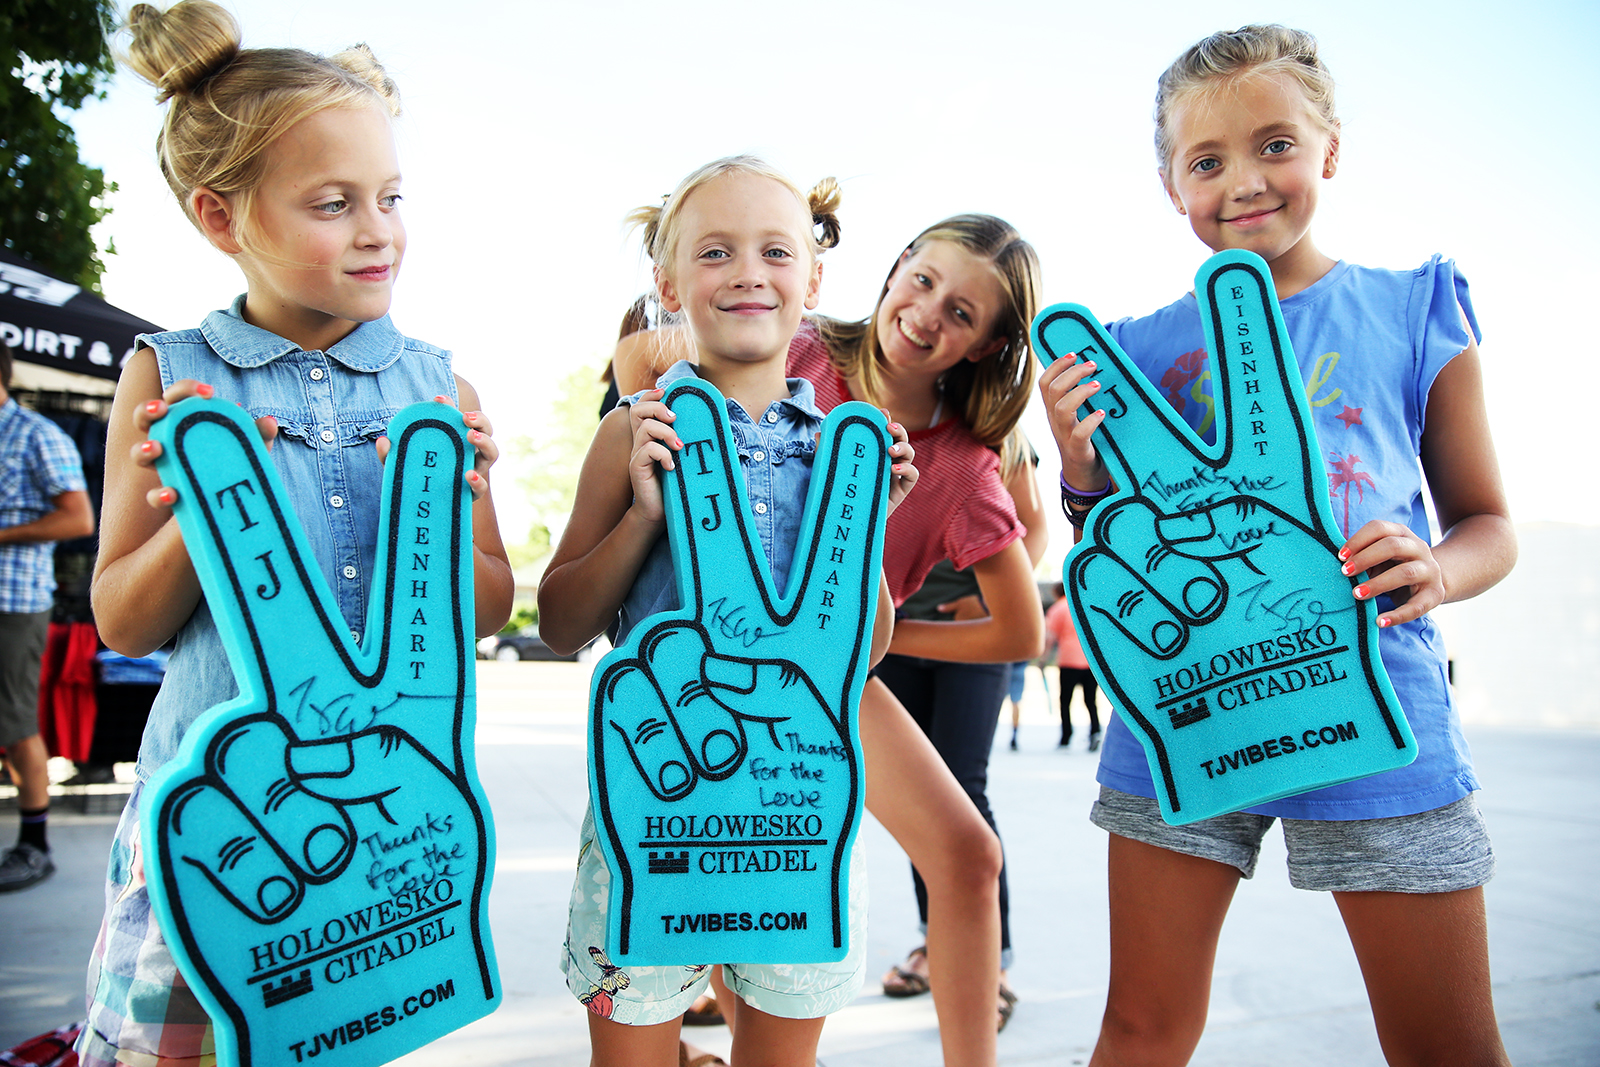 Happy young fans with an autograph and message: Thanks for the love from TJ Eisenhart. 2018 Tour of Utah Team Presentation, August 4, 2018, Cedar City, Utah. Photo by Cathy Fegan-Kim, cottonsoxphotography.net